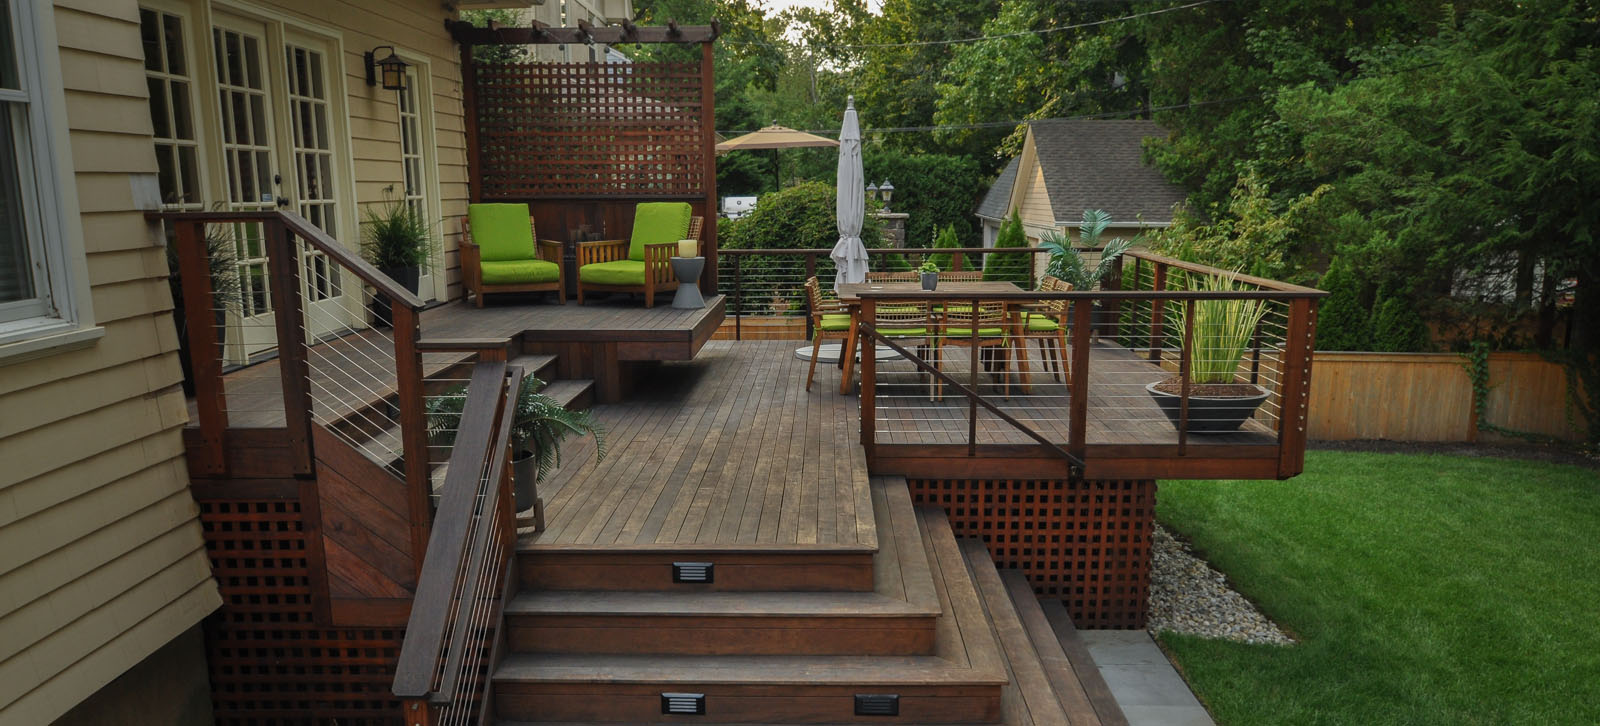 before and after landscape pictures, after, deck design nj